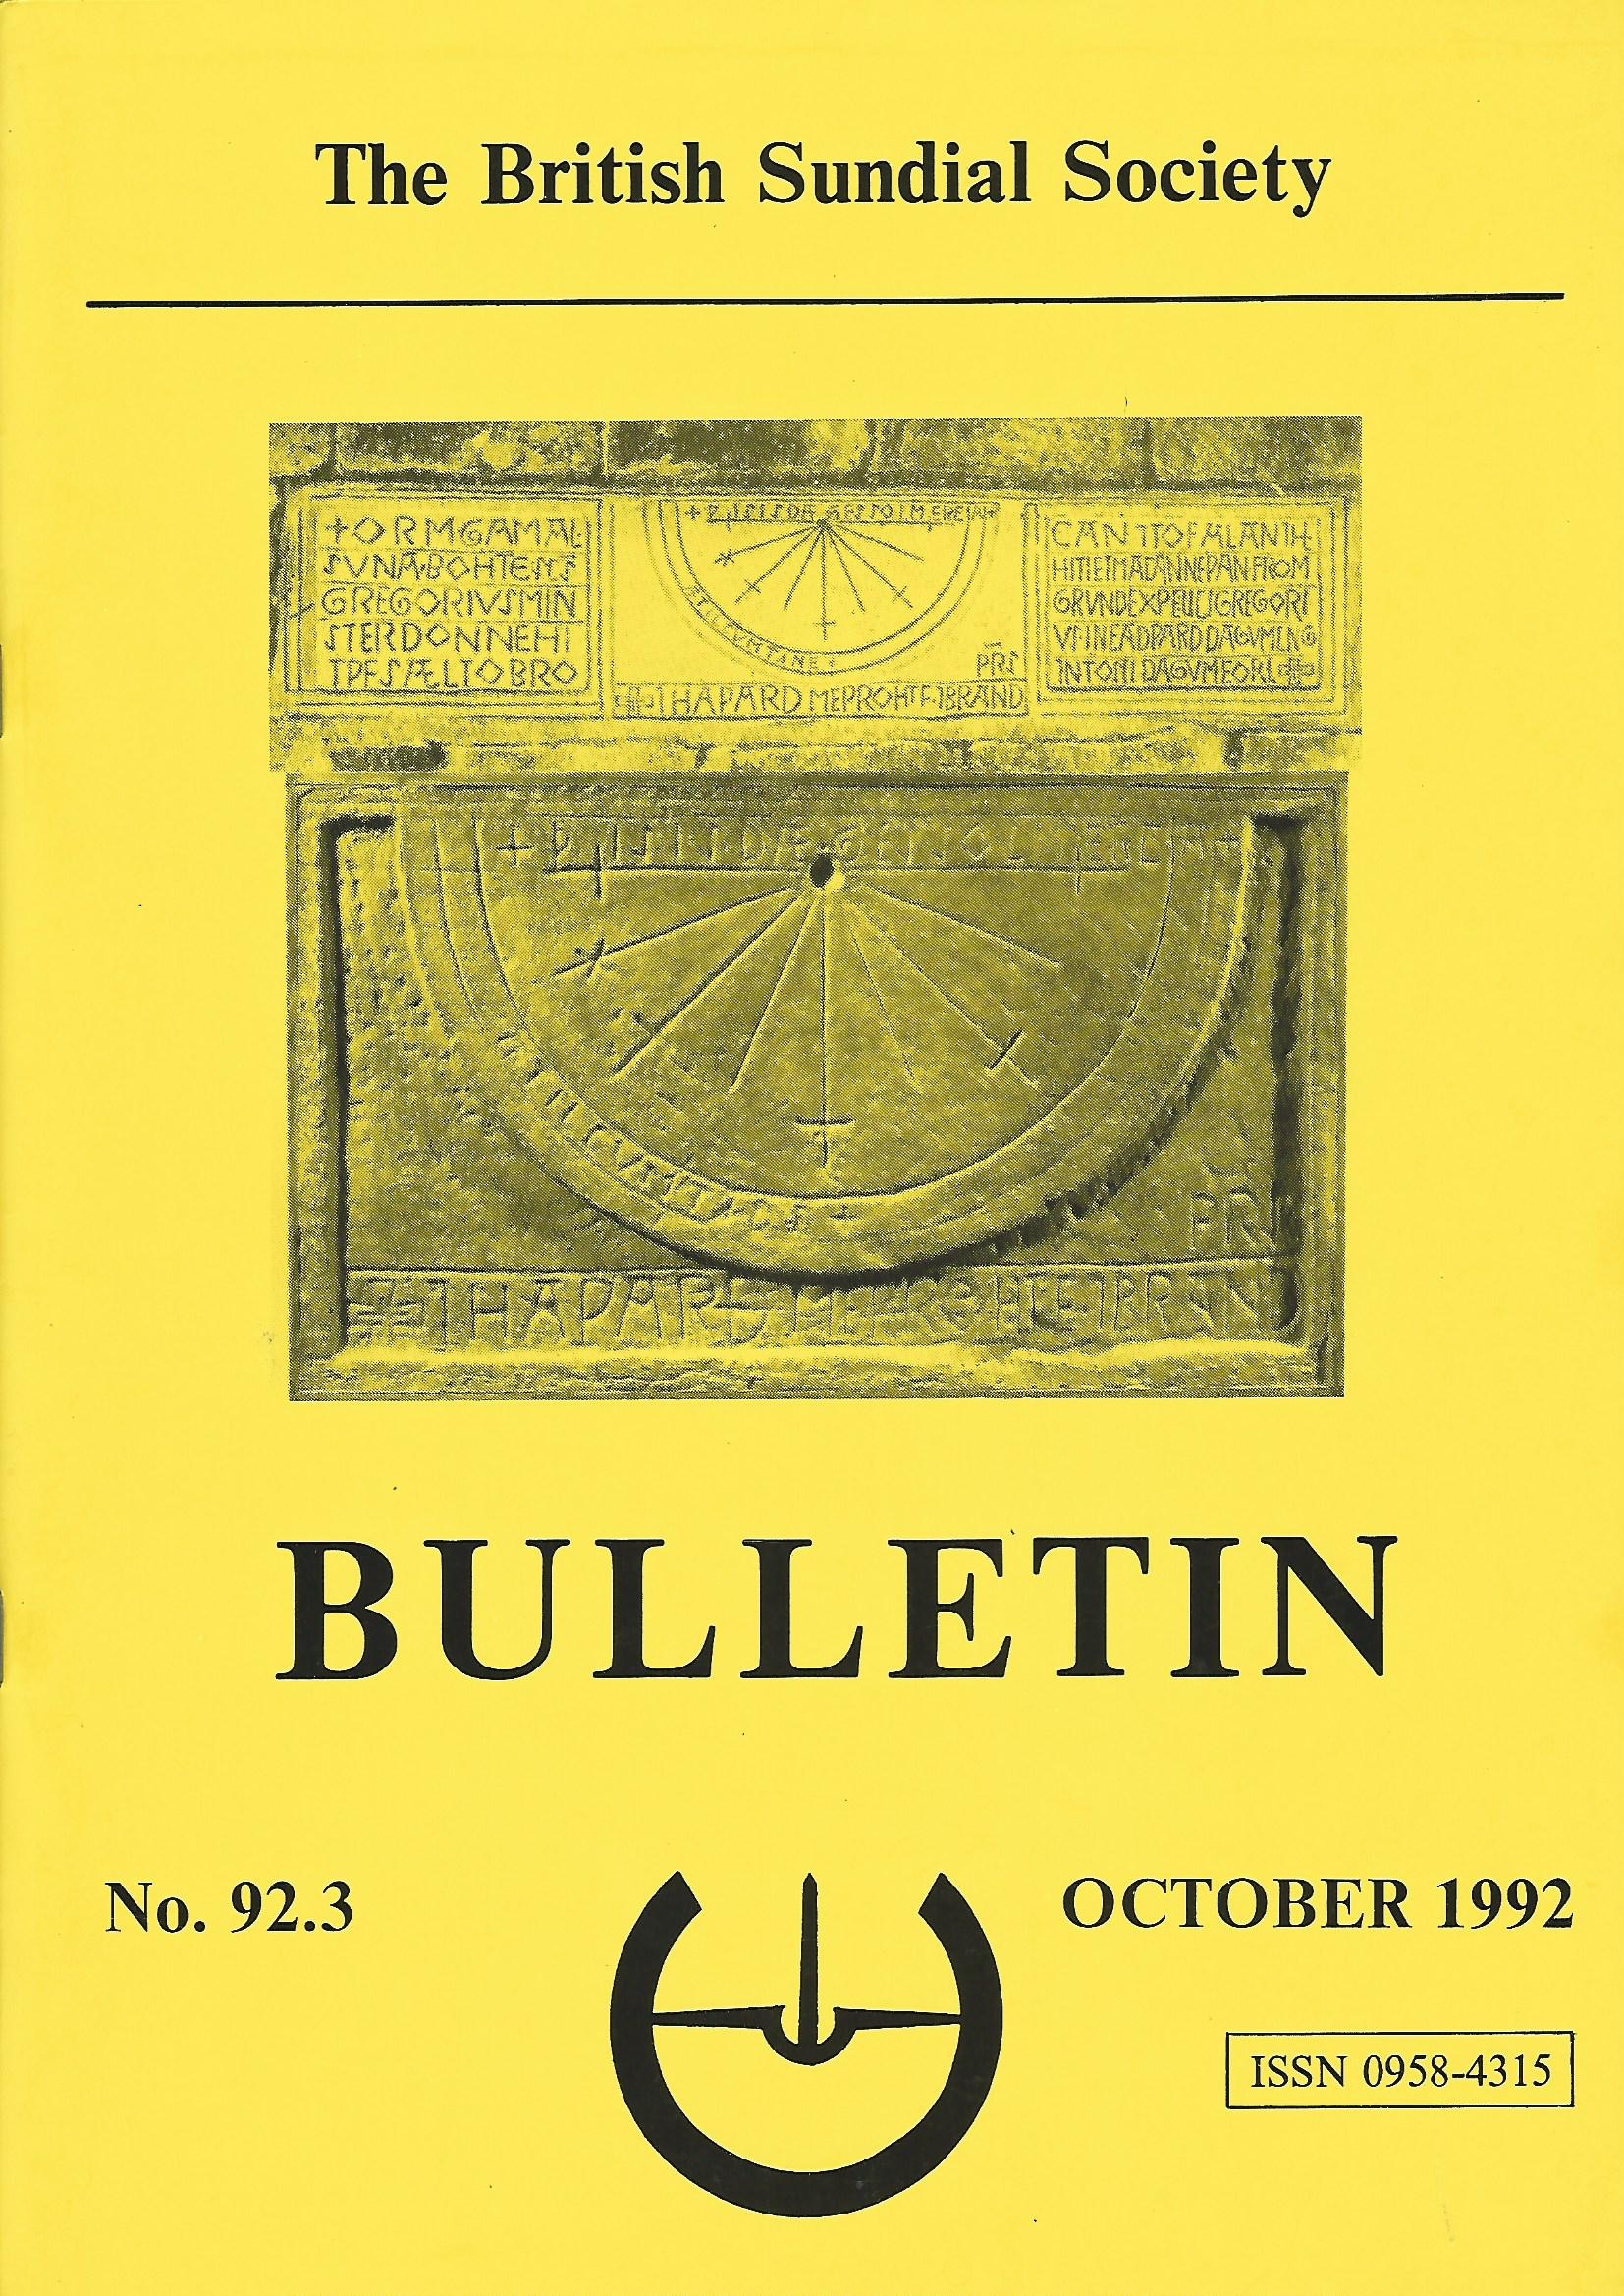 Image for The British Sundial Society Bulletin No. 92.3, October 1992.